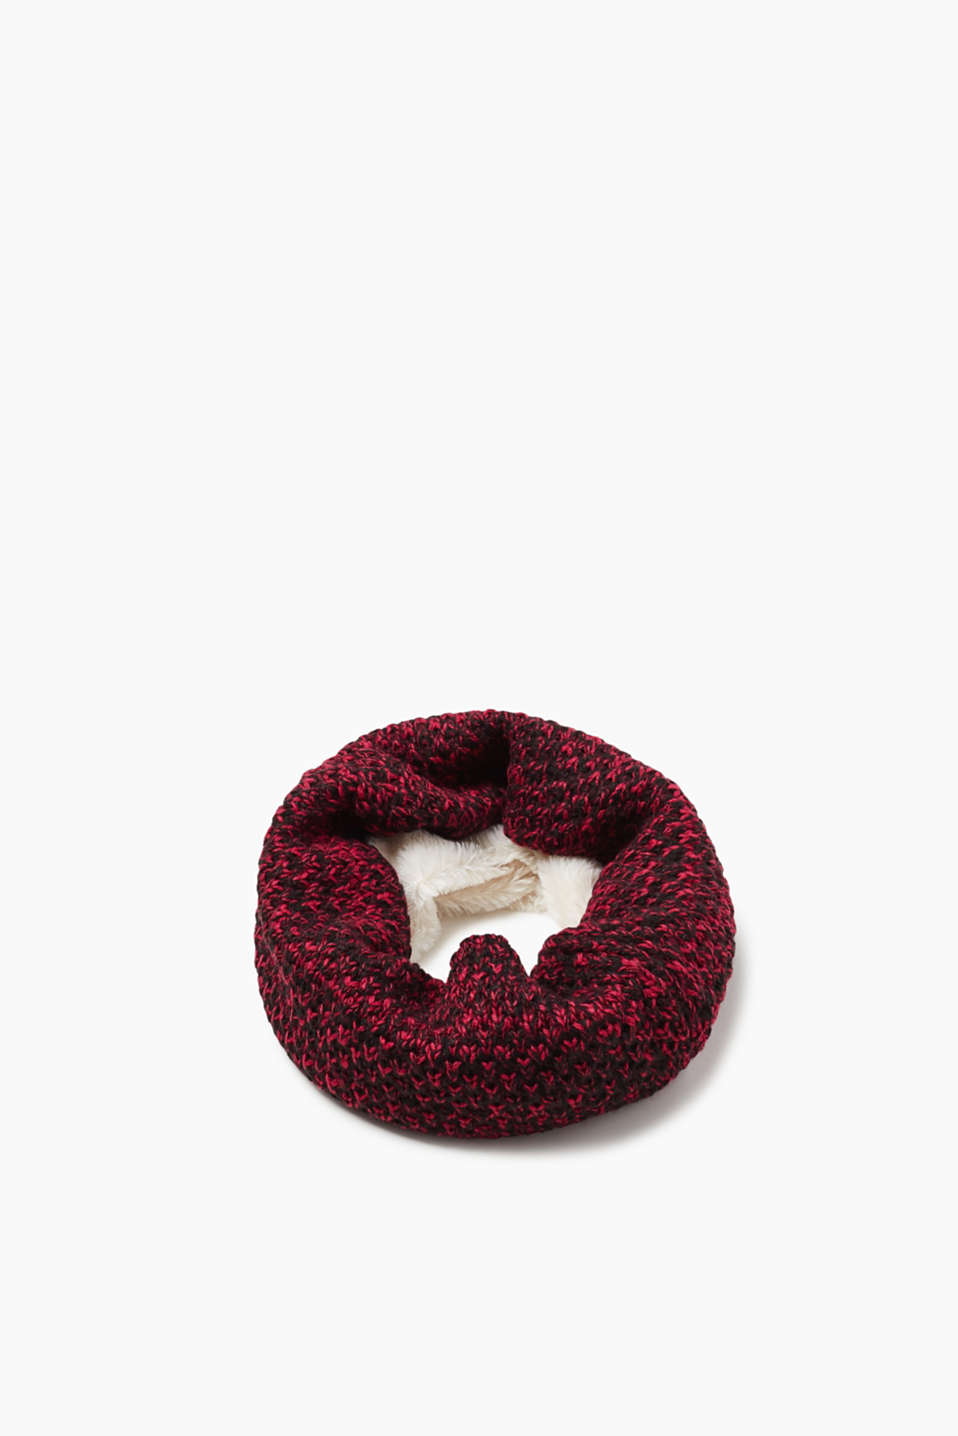 Snuggle up and feel good! This snood is just the thing for cold winter days.